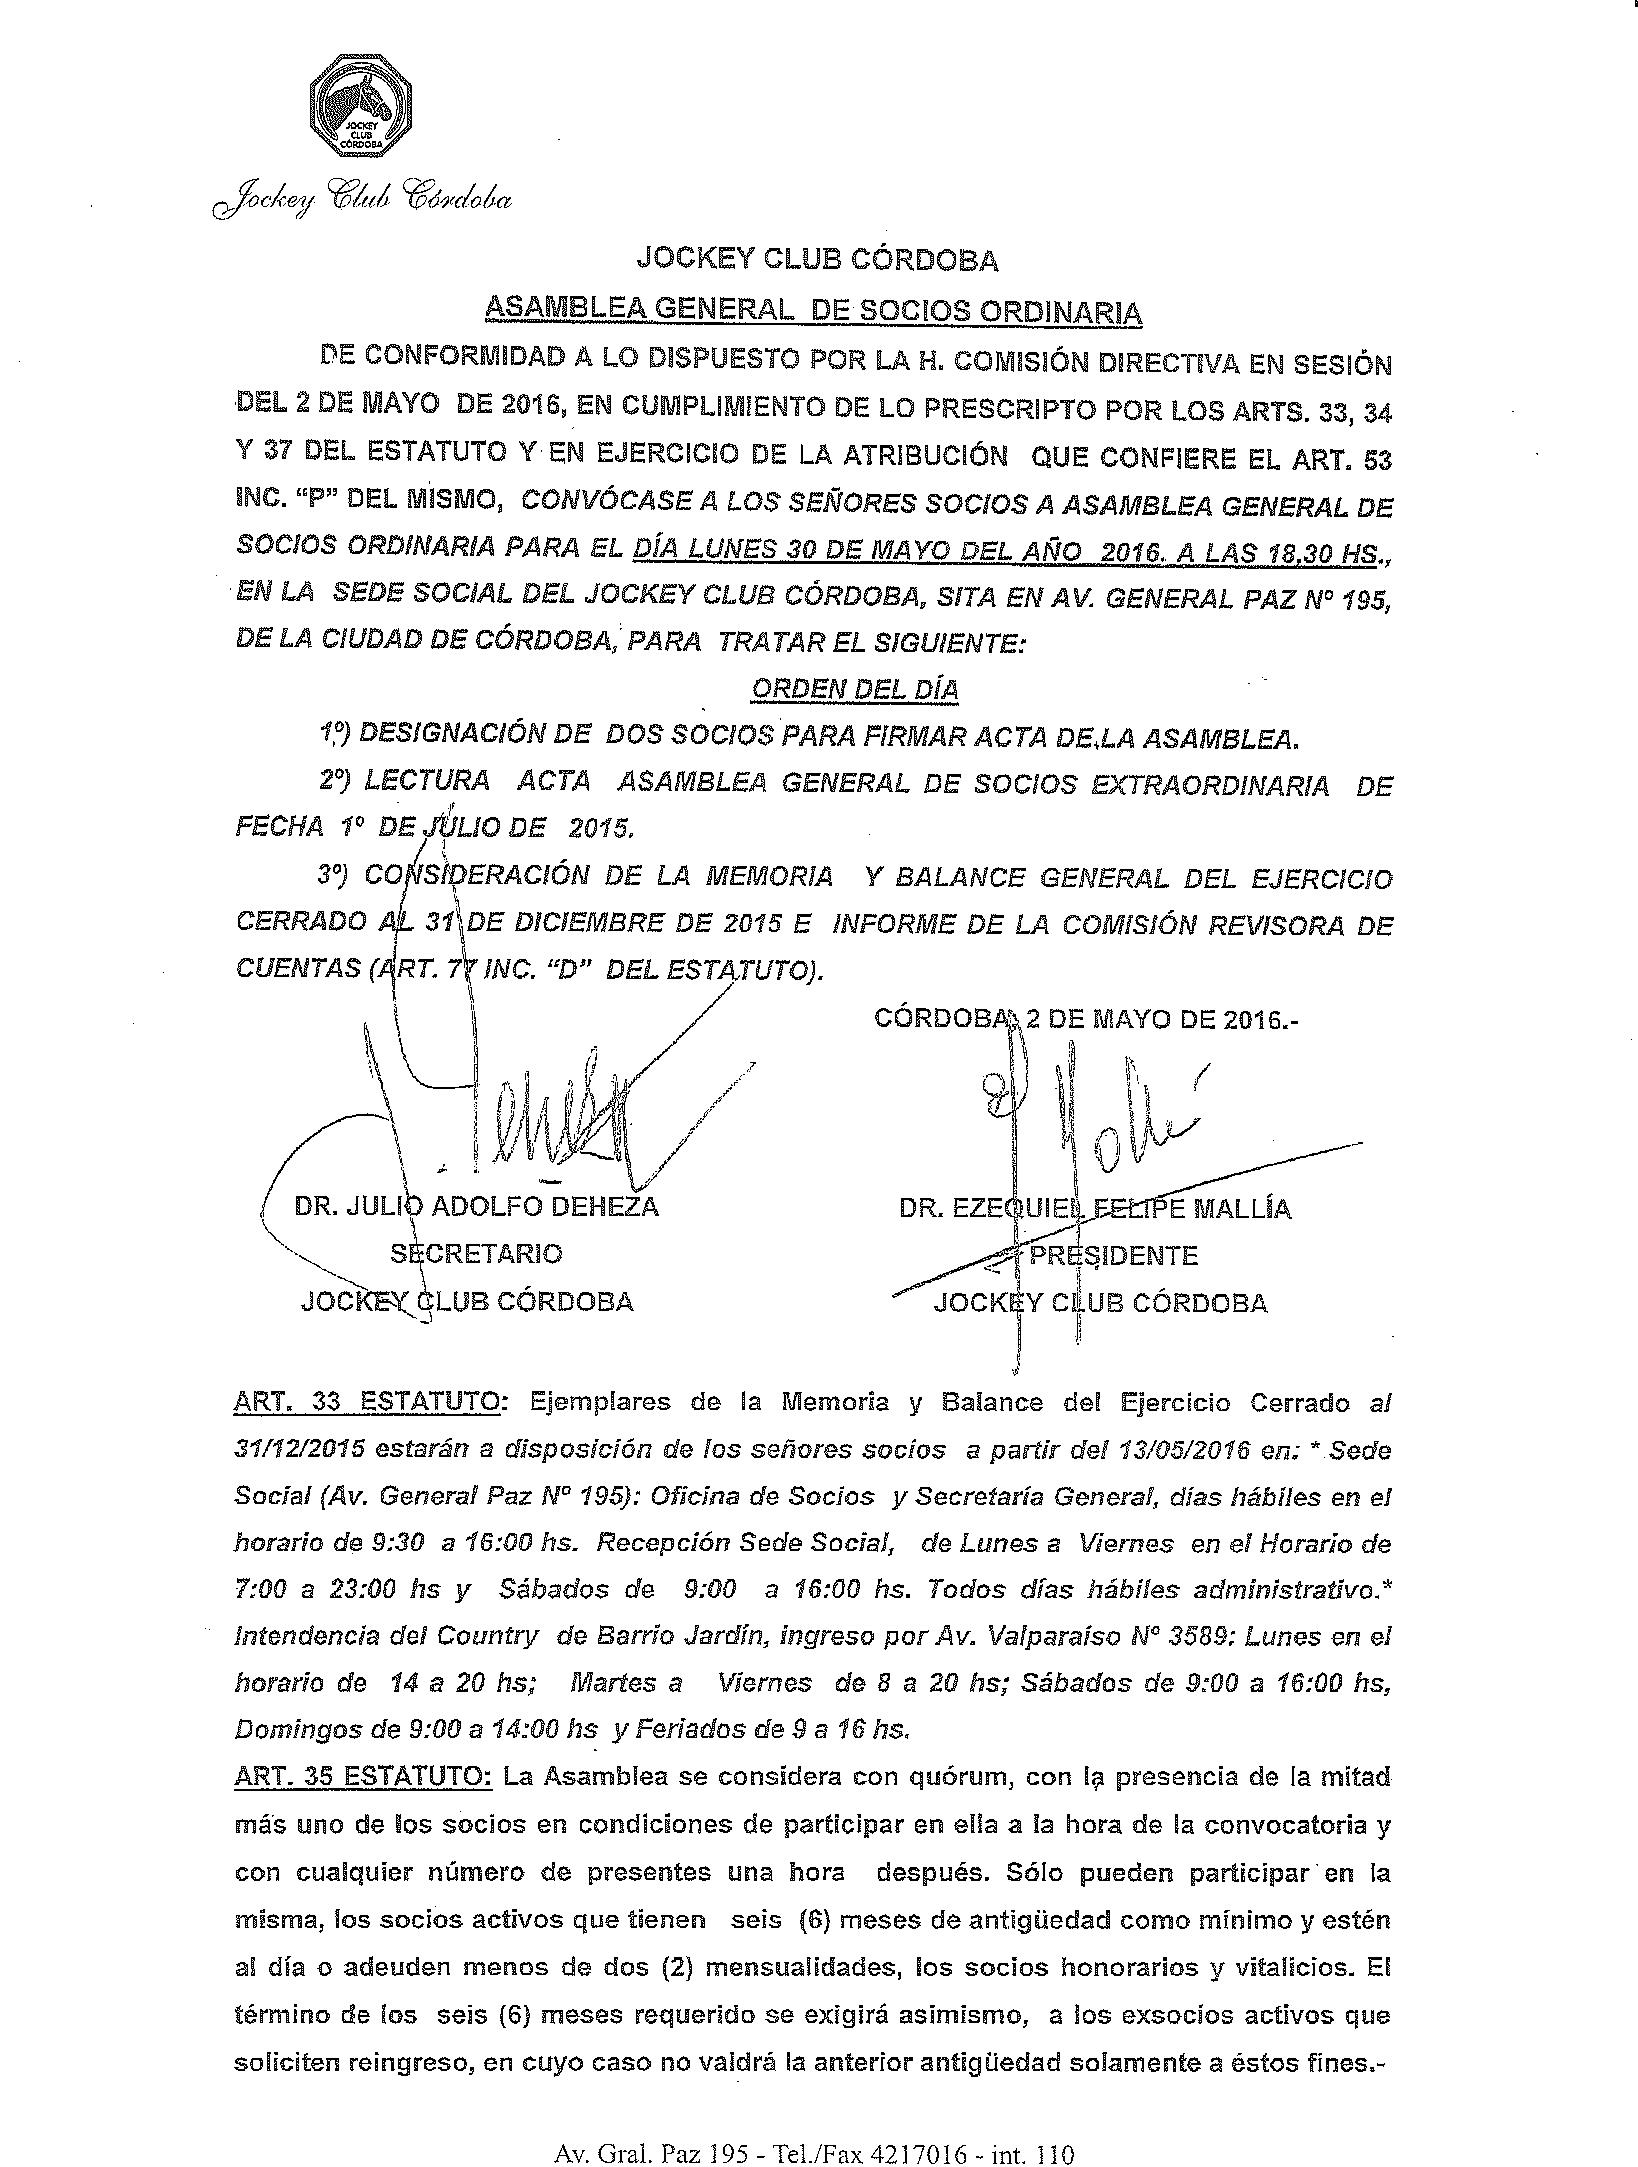 convocatoria_asamblea_ordinaria_2016_0001